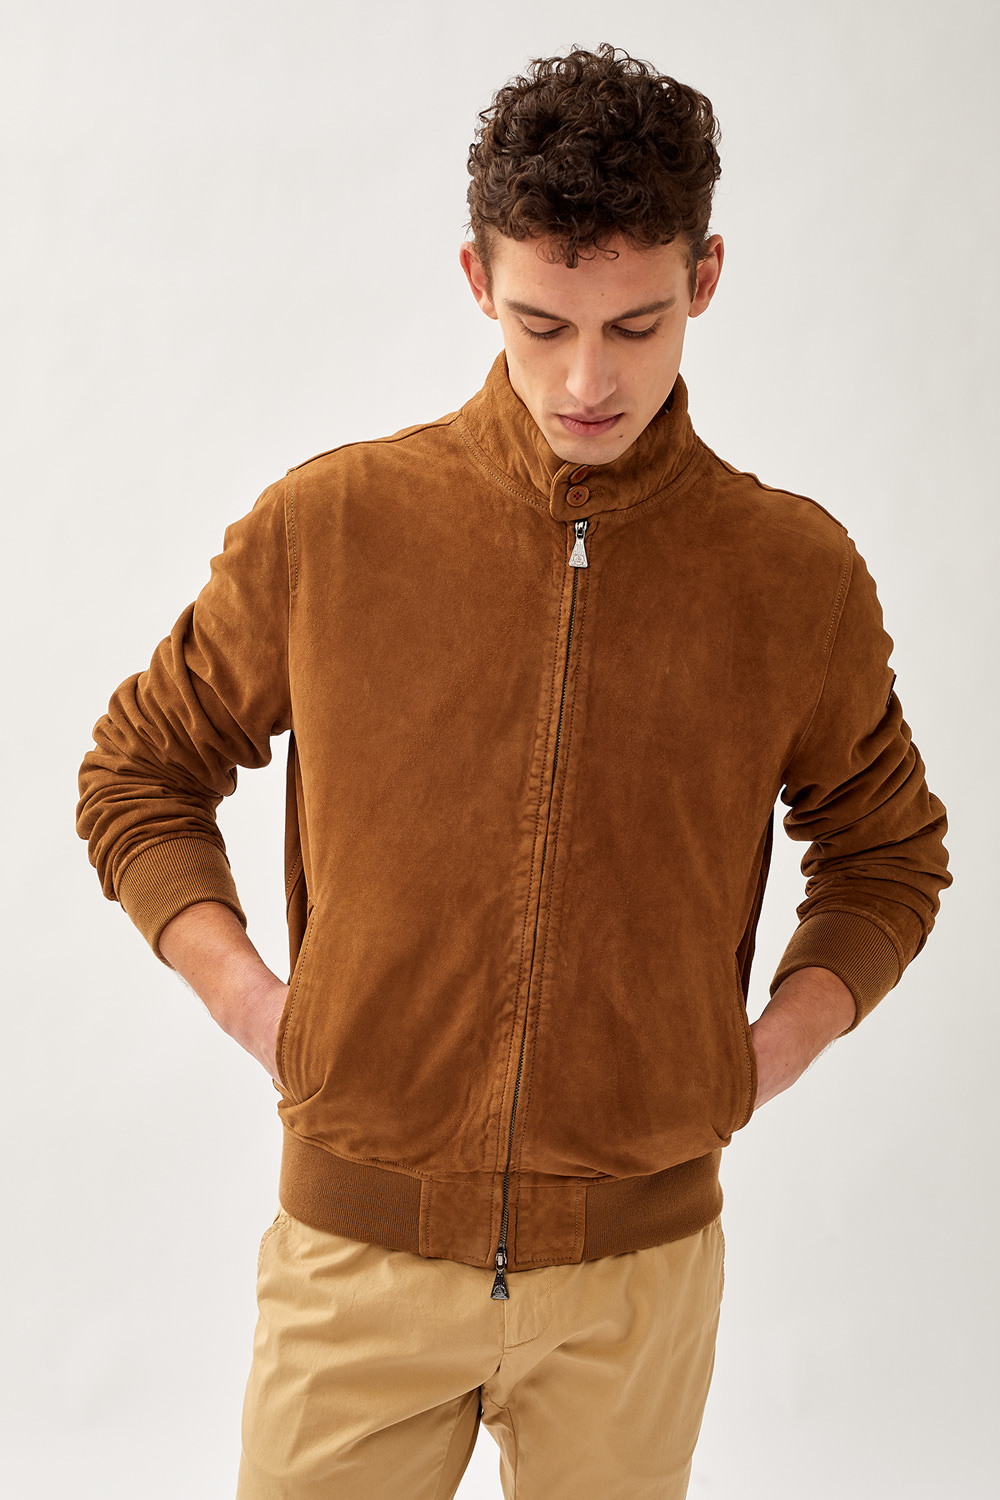 ROY ROGERS: BARRACUDA JACKET NEW IN WASHED SUEDE